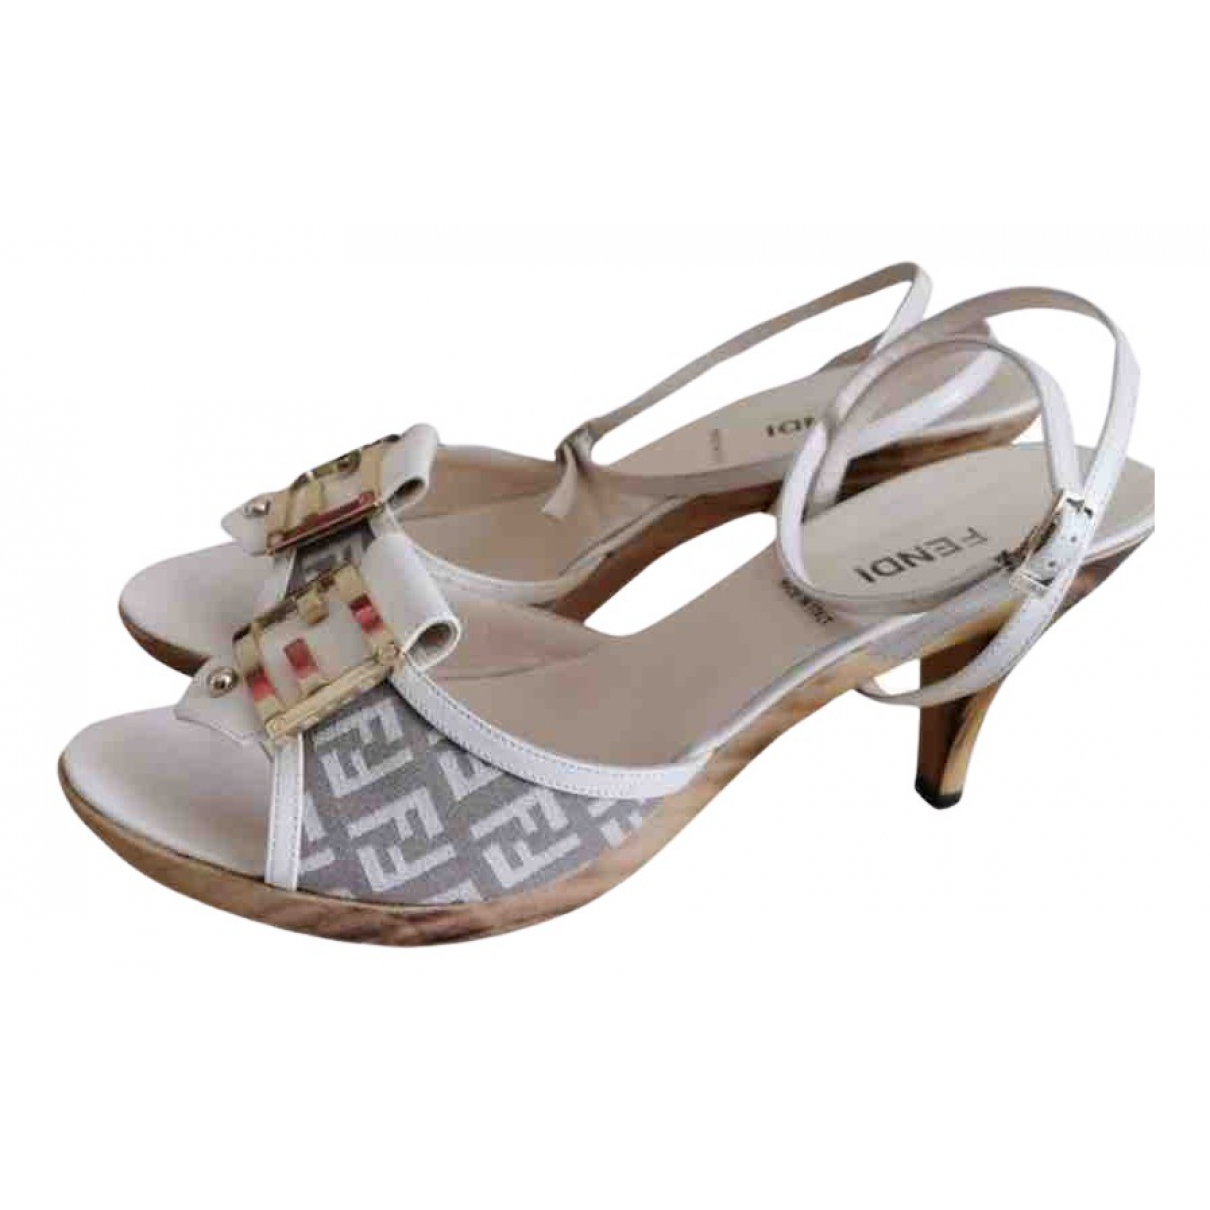 Fendi N Beige Cloth Mules & Clogs for Women 6 UK